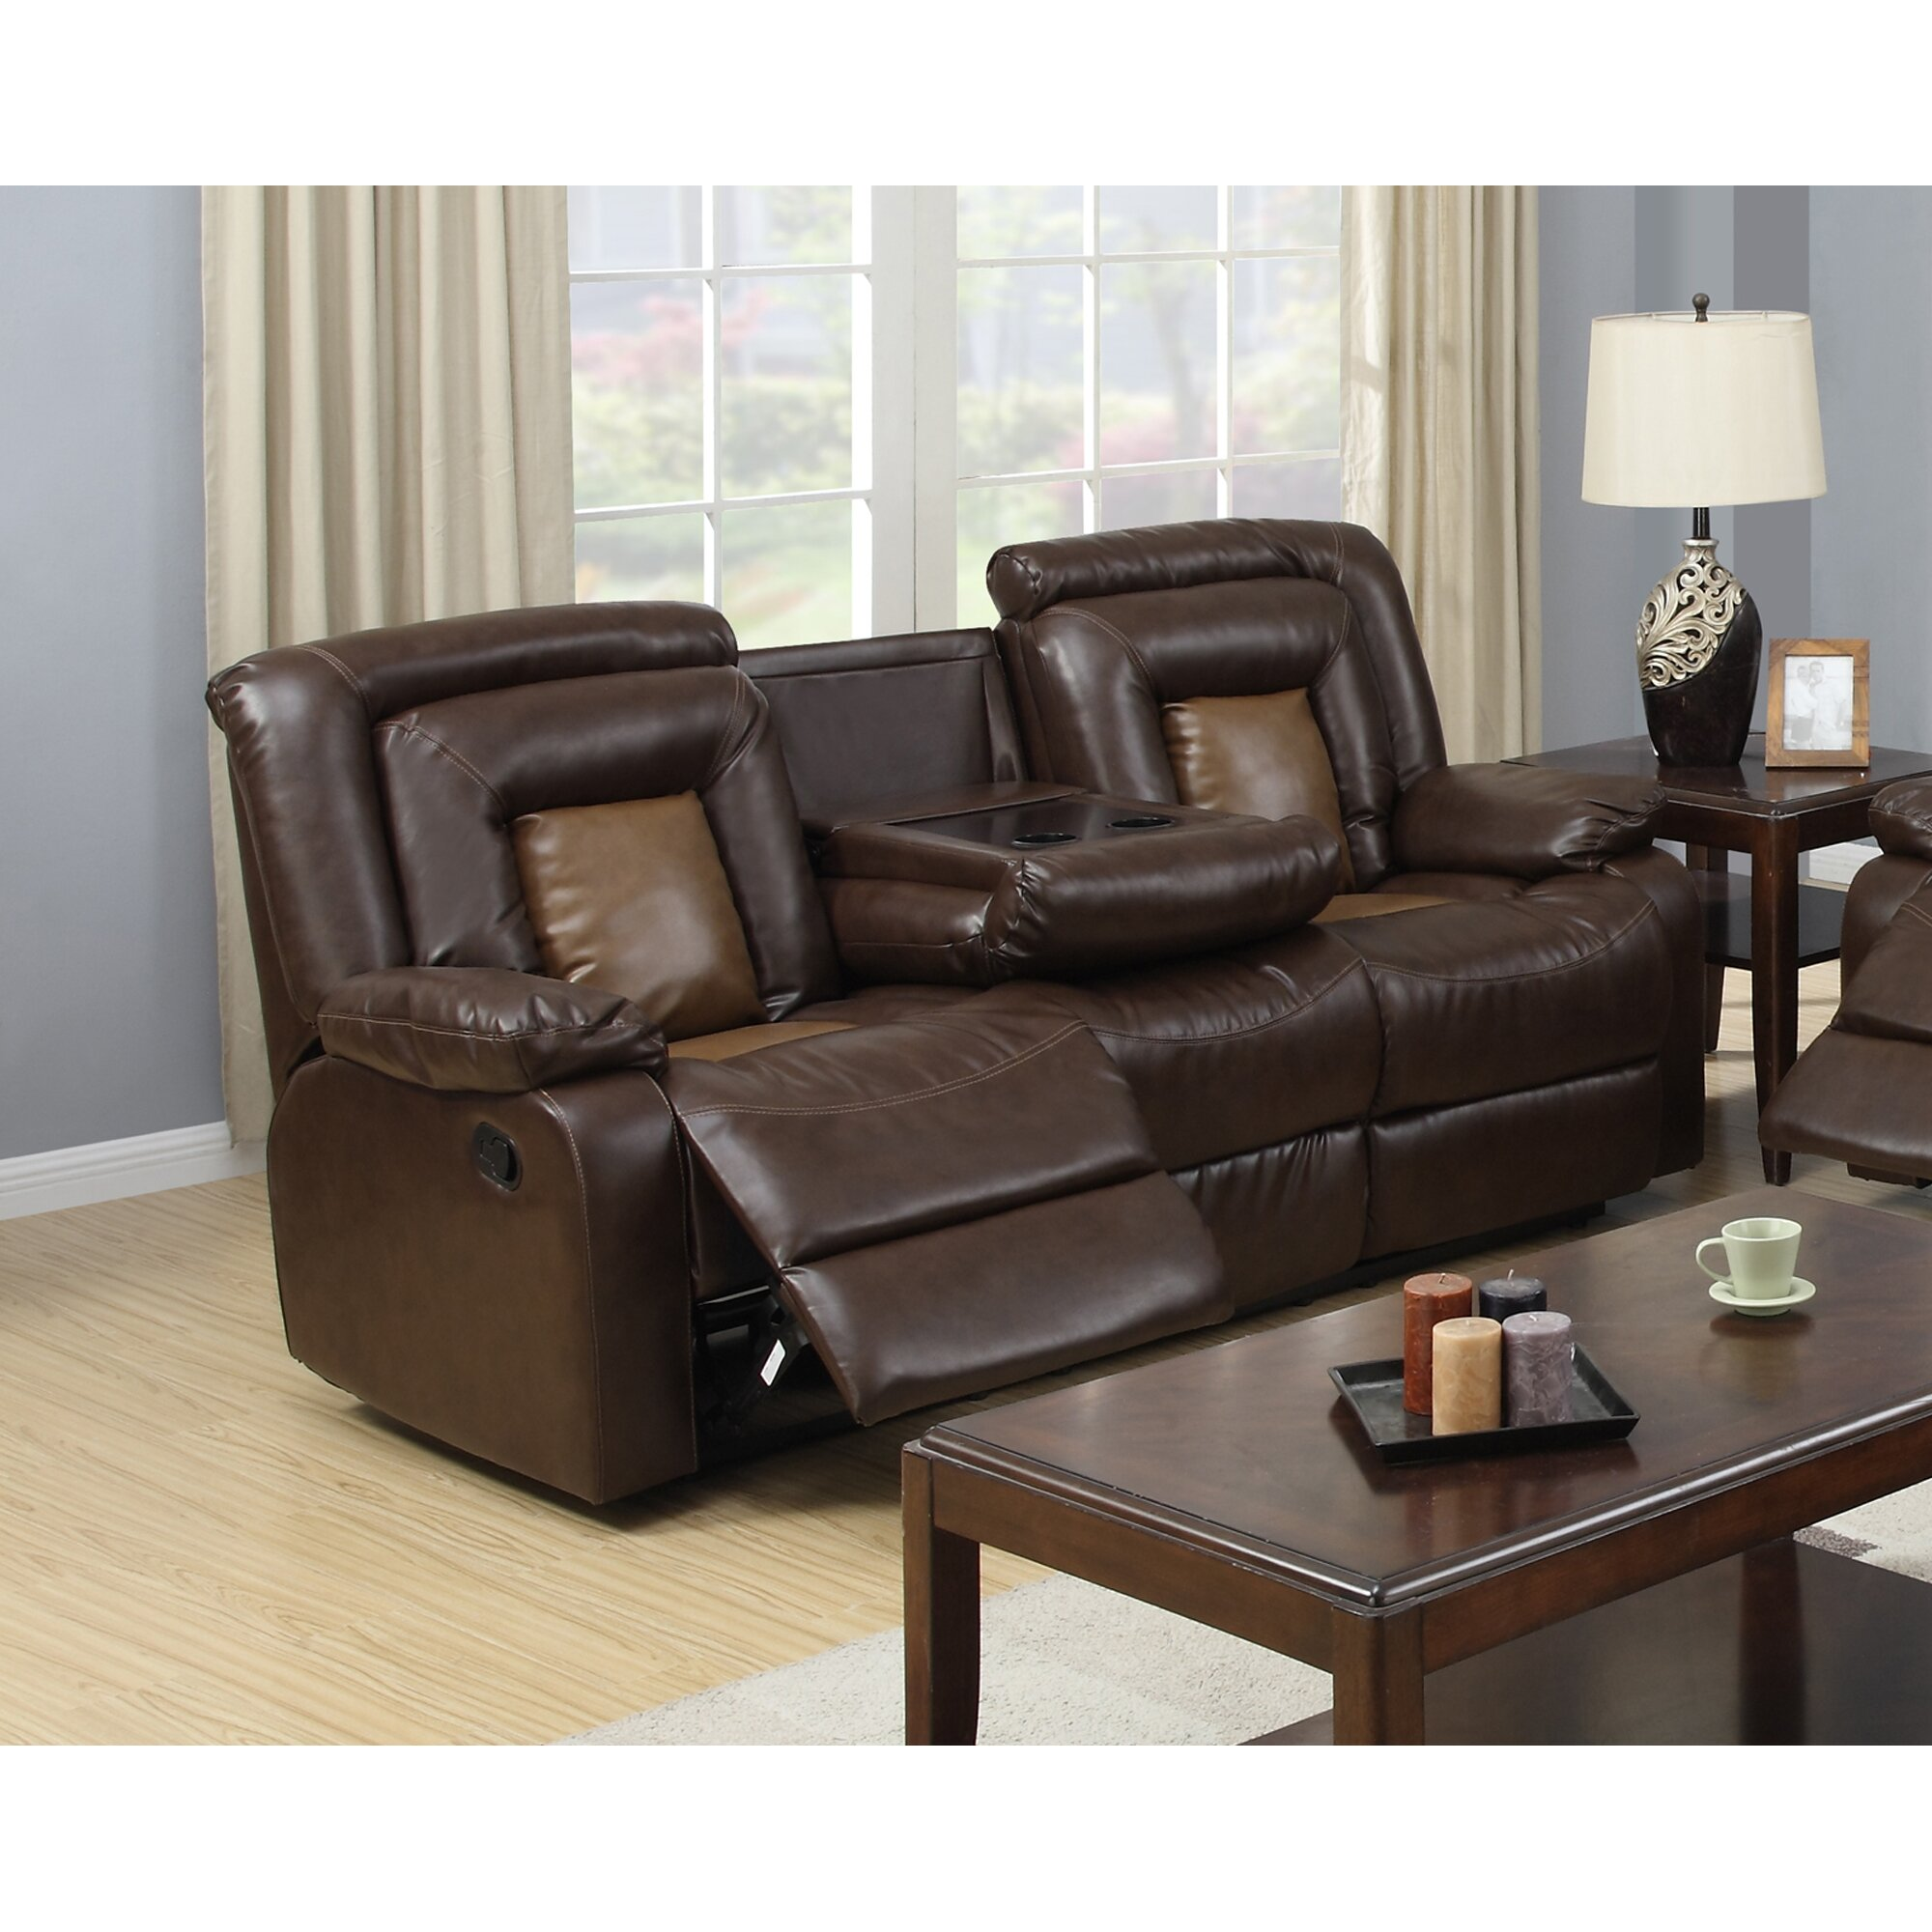 Beverly Fine Furniture Topeka Reclining Sofa Reviews